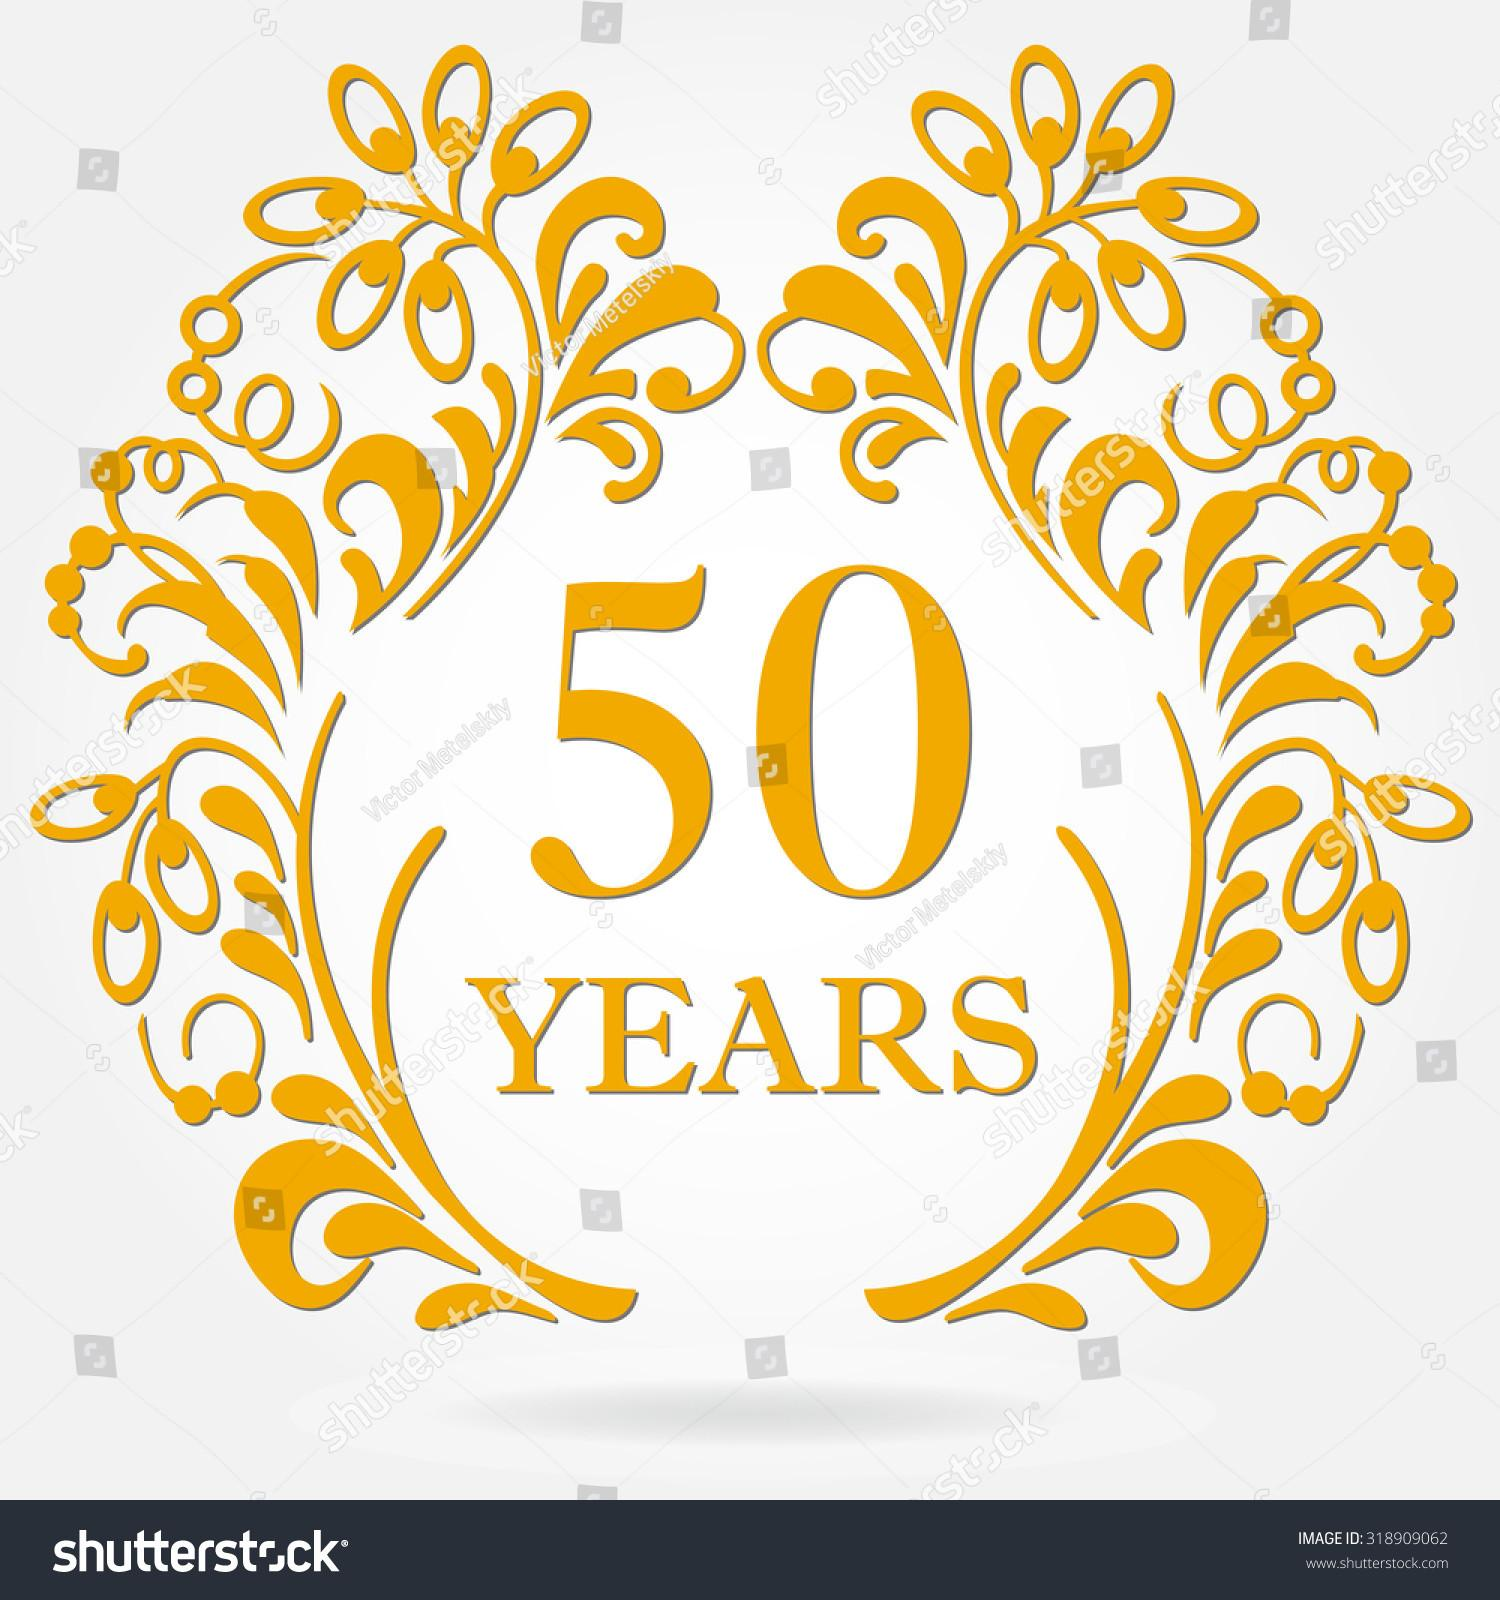 Years Anniversary Icon Ornate Frame Floral